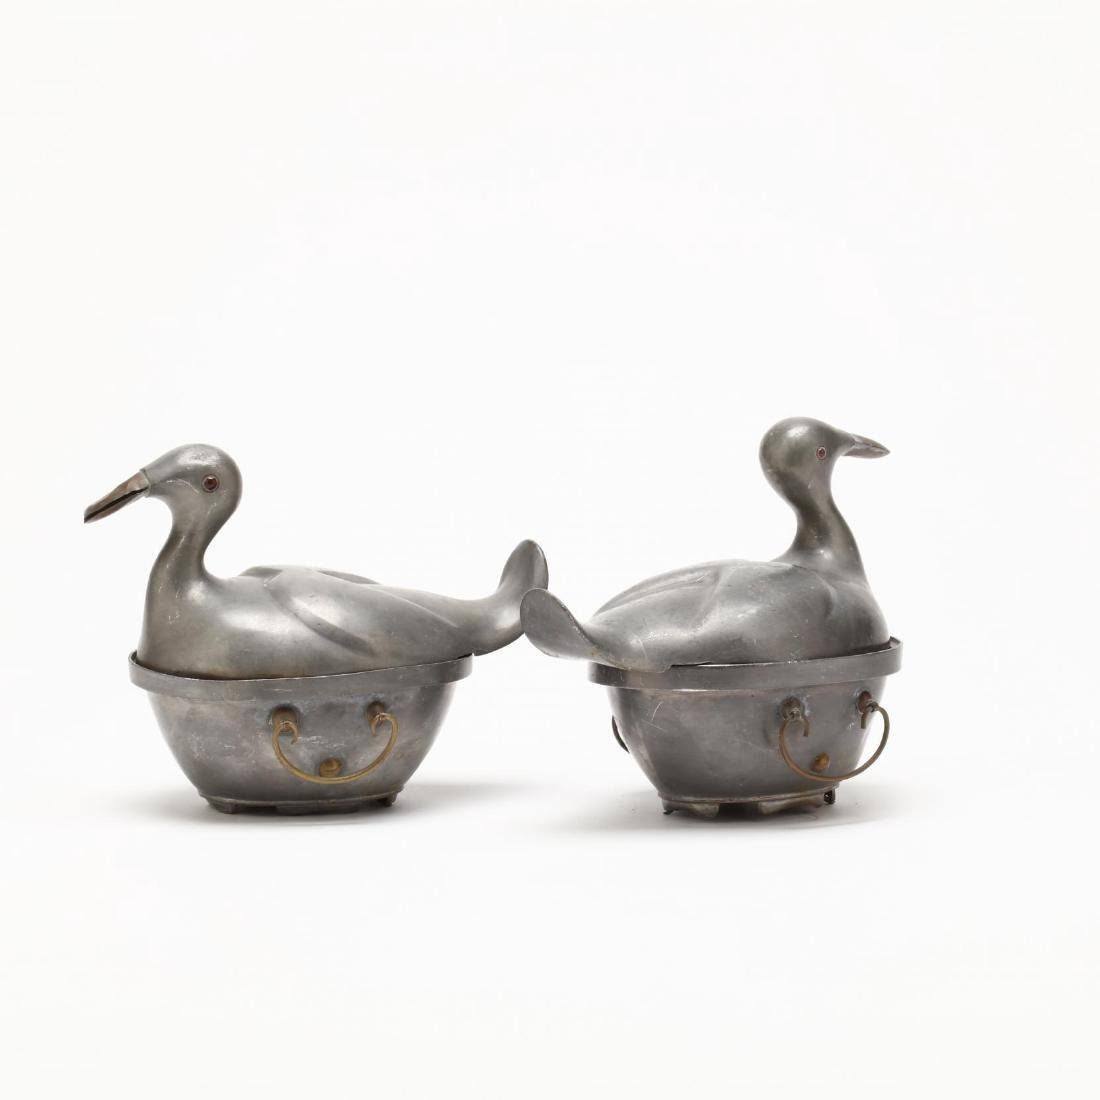 A Pair of Chinese Pewter Duck Containers - 3